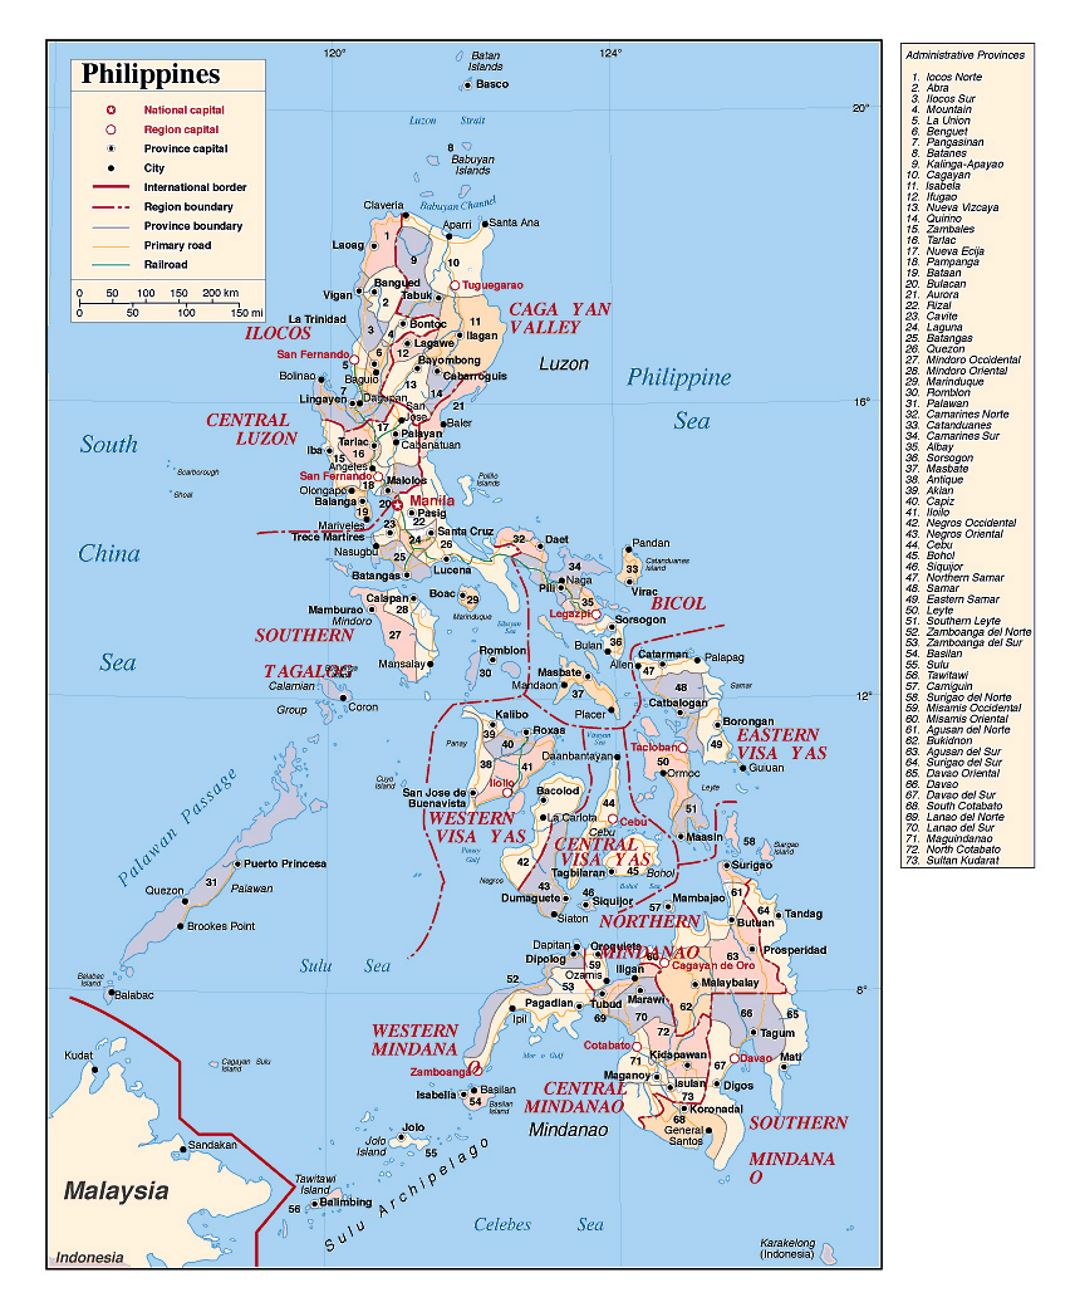 Political and administrative divisions map of Philippines